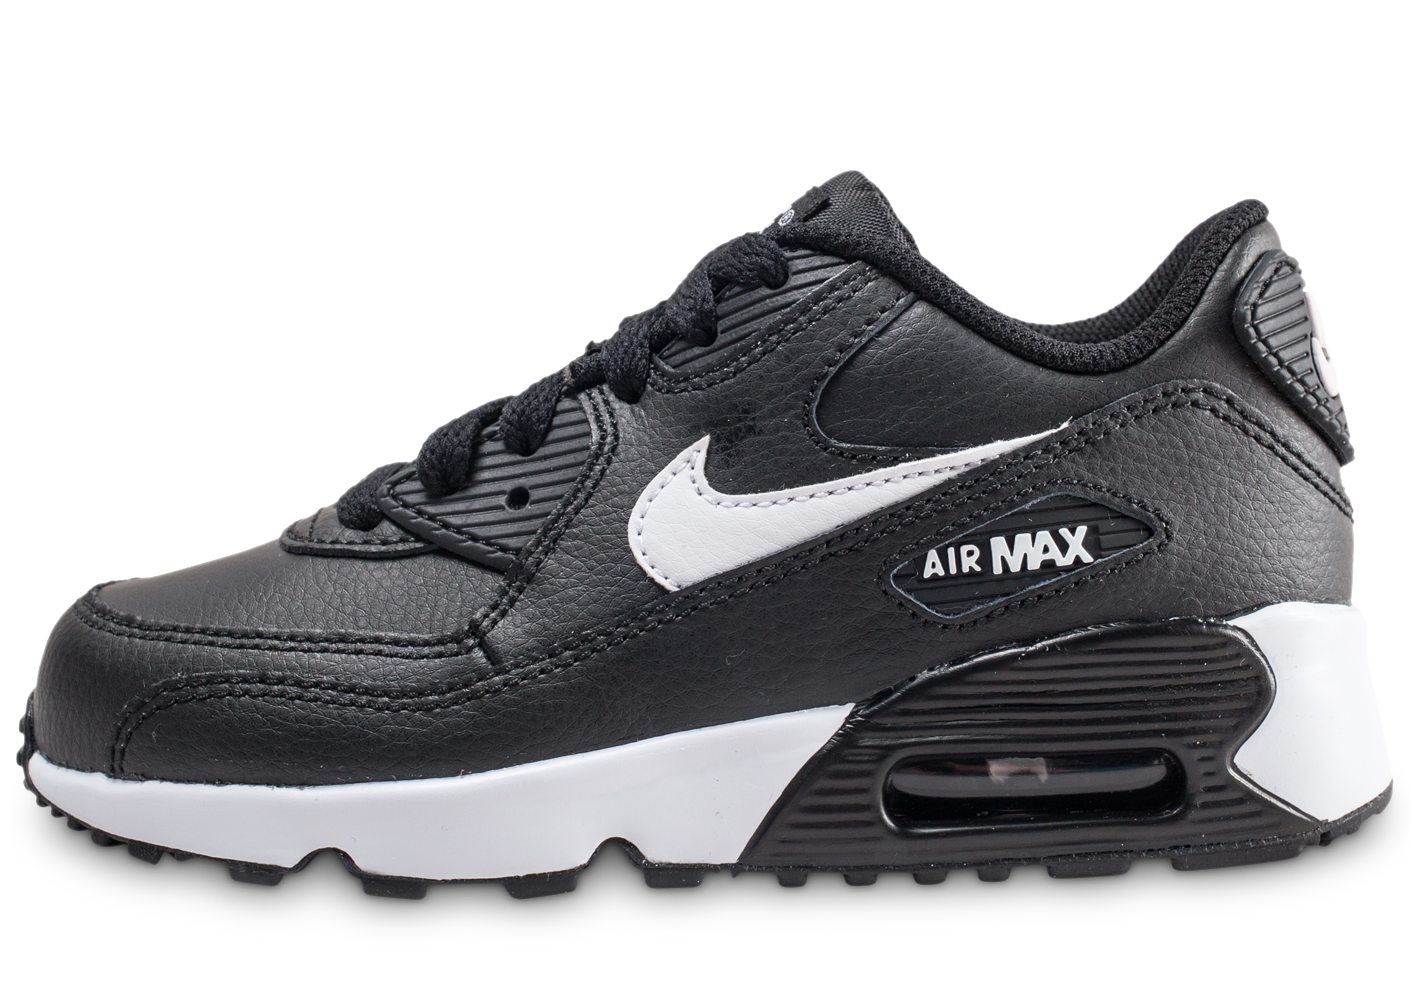 super popular 265d4 e44bc Nike air max 90 leather noire et blanche enfant.